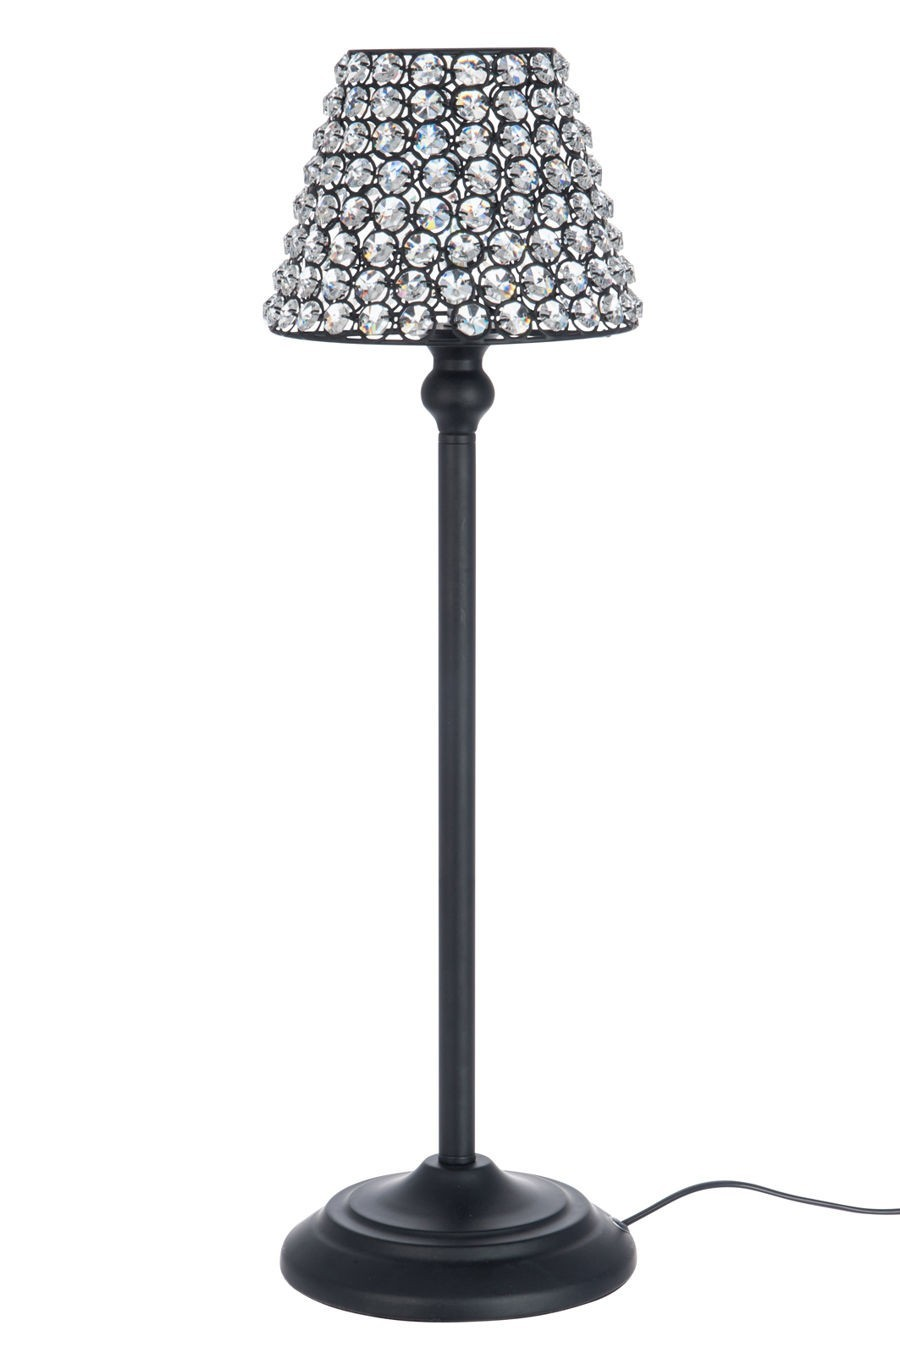 Lampadaire Exterieur Gifi Lampe A Poser Fer Forge